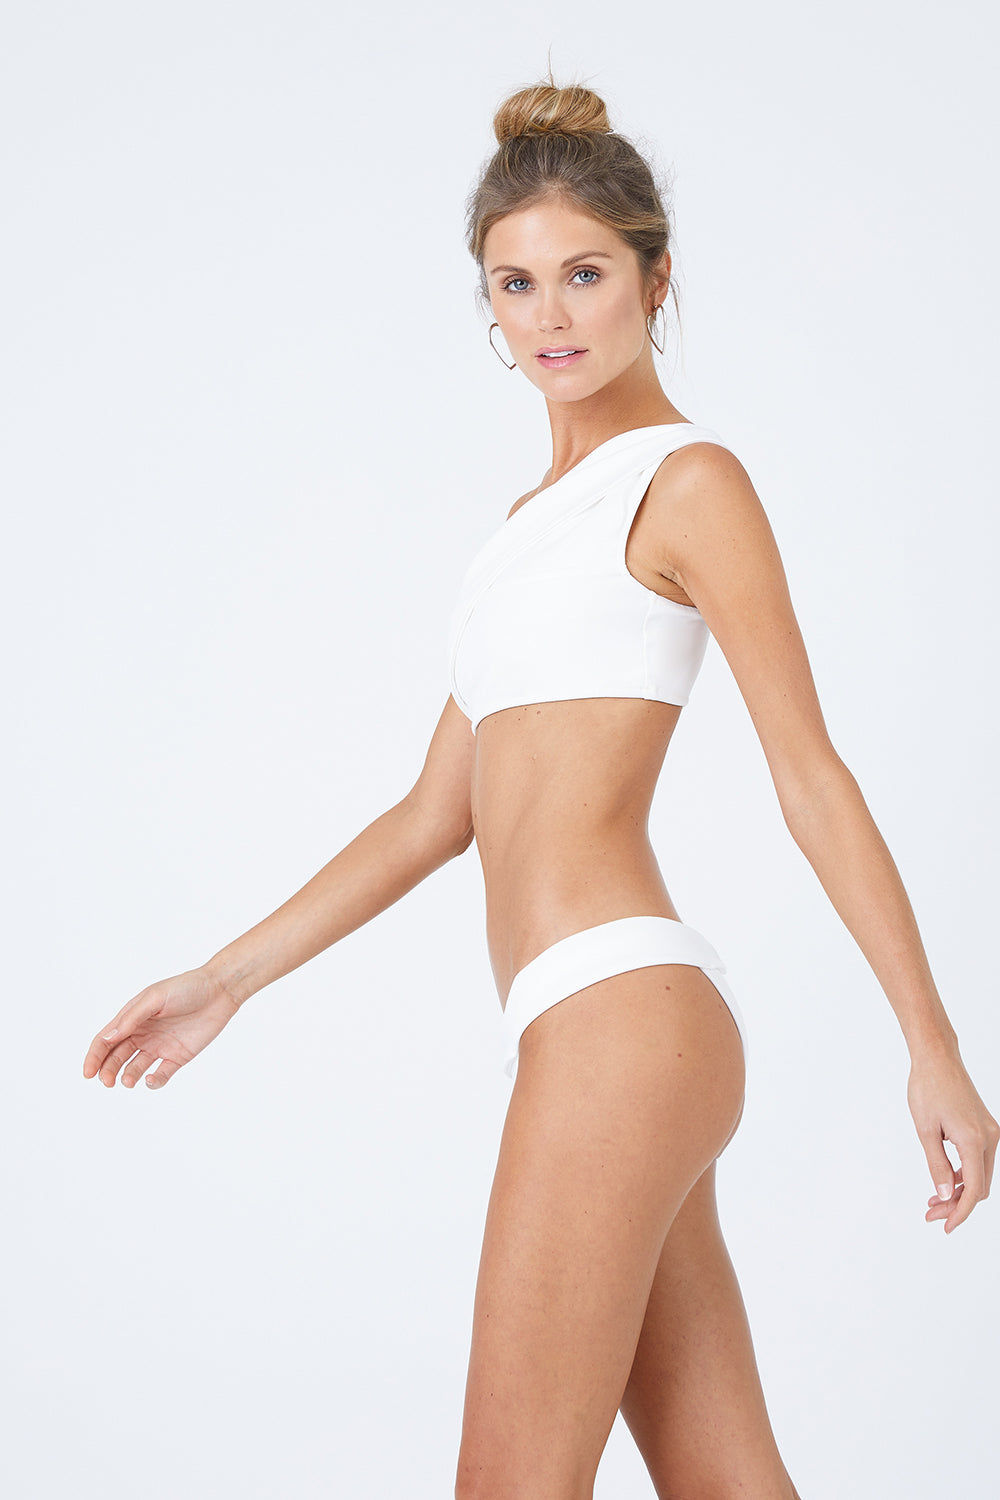 HAIGHT Maria One Shoulder Bikini Top - Off-White Bikini Top | Off-White |Haight Maria One Shoulder Bikini Top - Off-White Features:  One Shoulder style Full coverage bikini top Wide band and straps Pull over style Front View